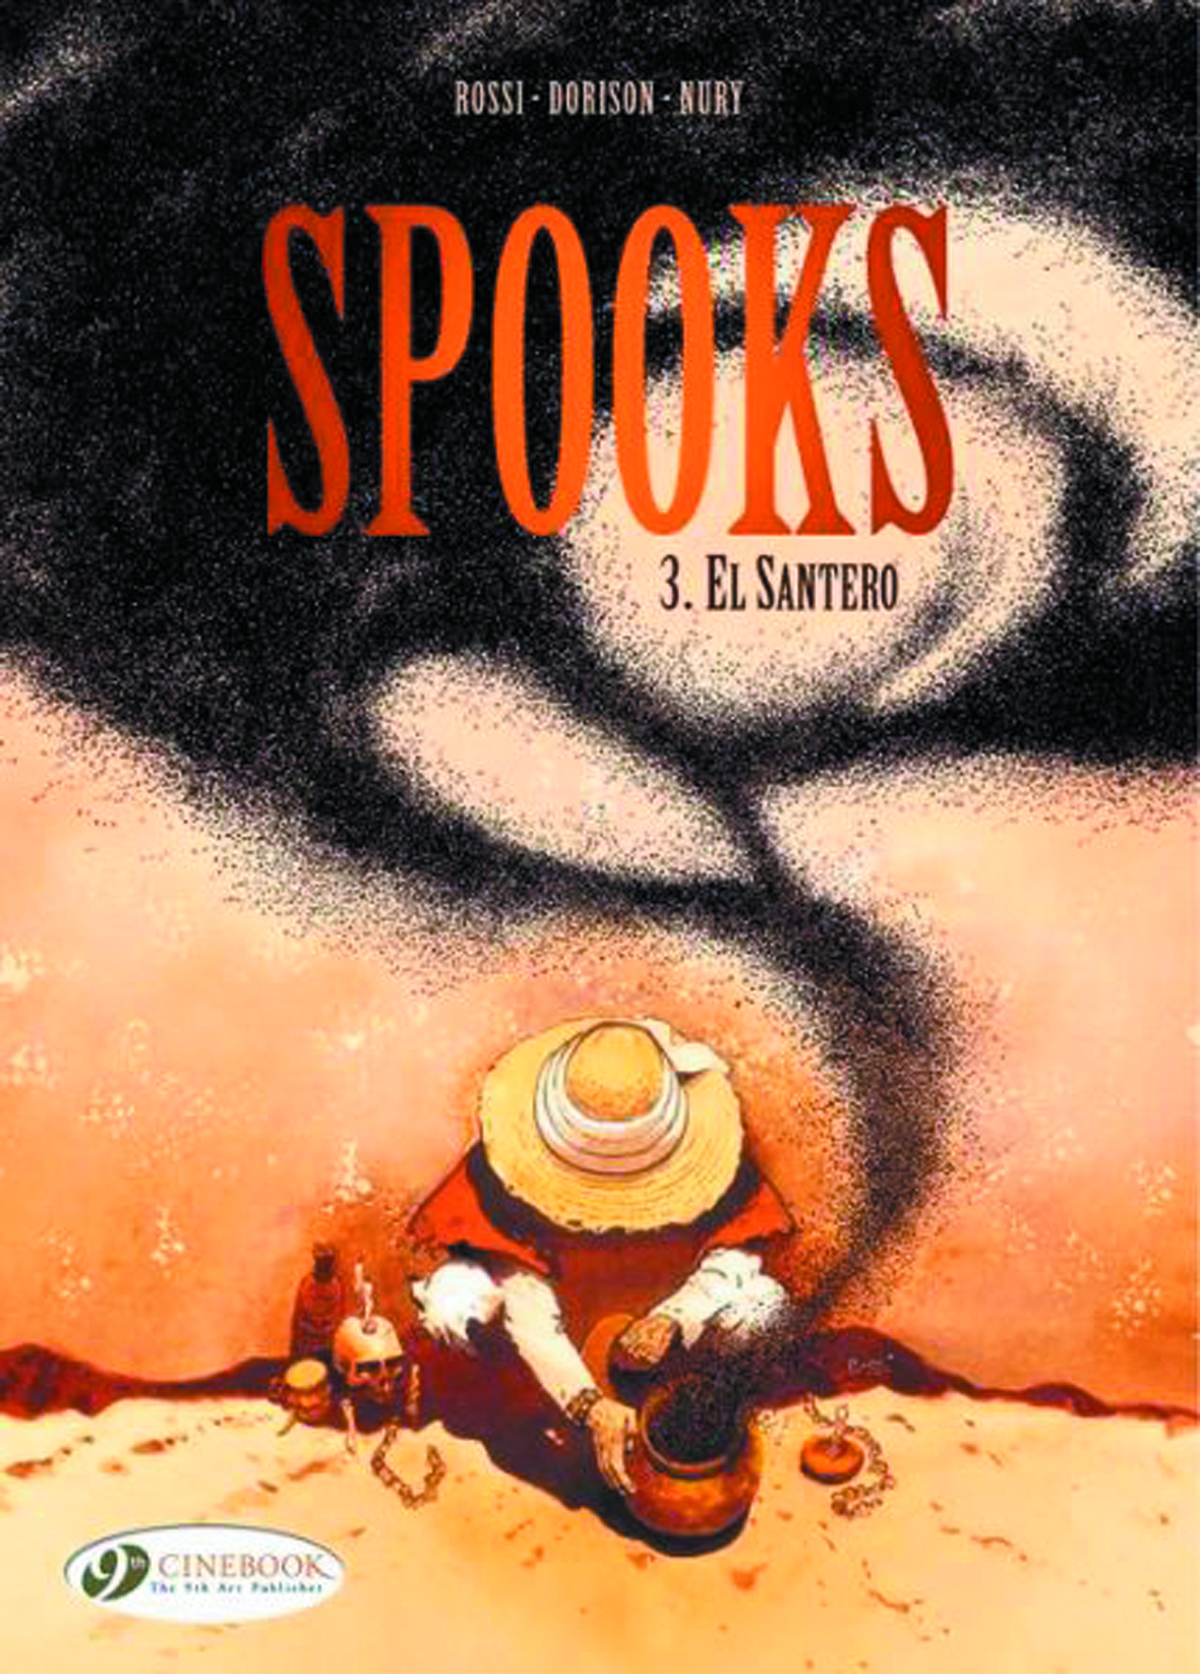 SPOOKS GN VOL 03 EL SANTERO